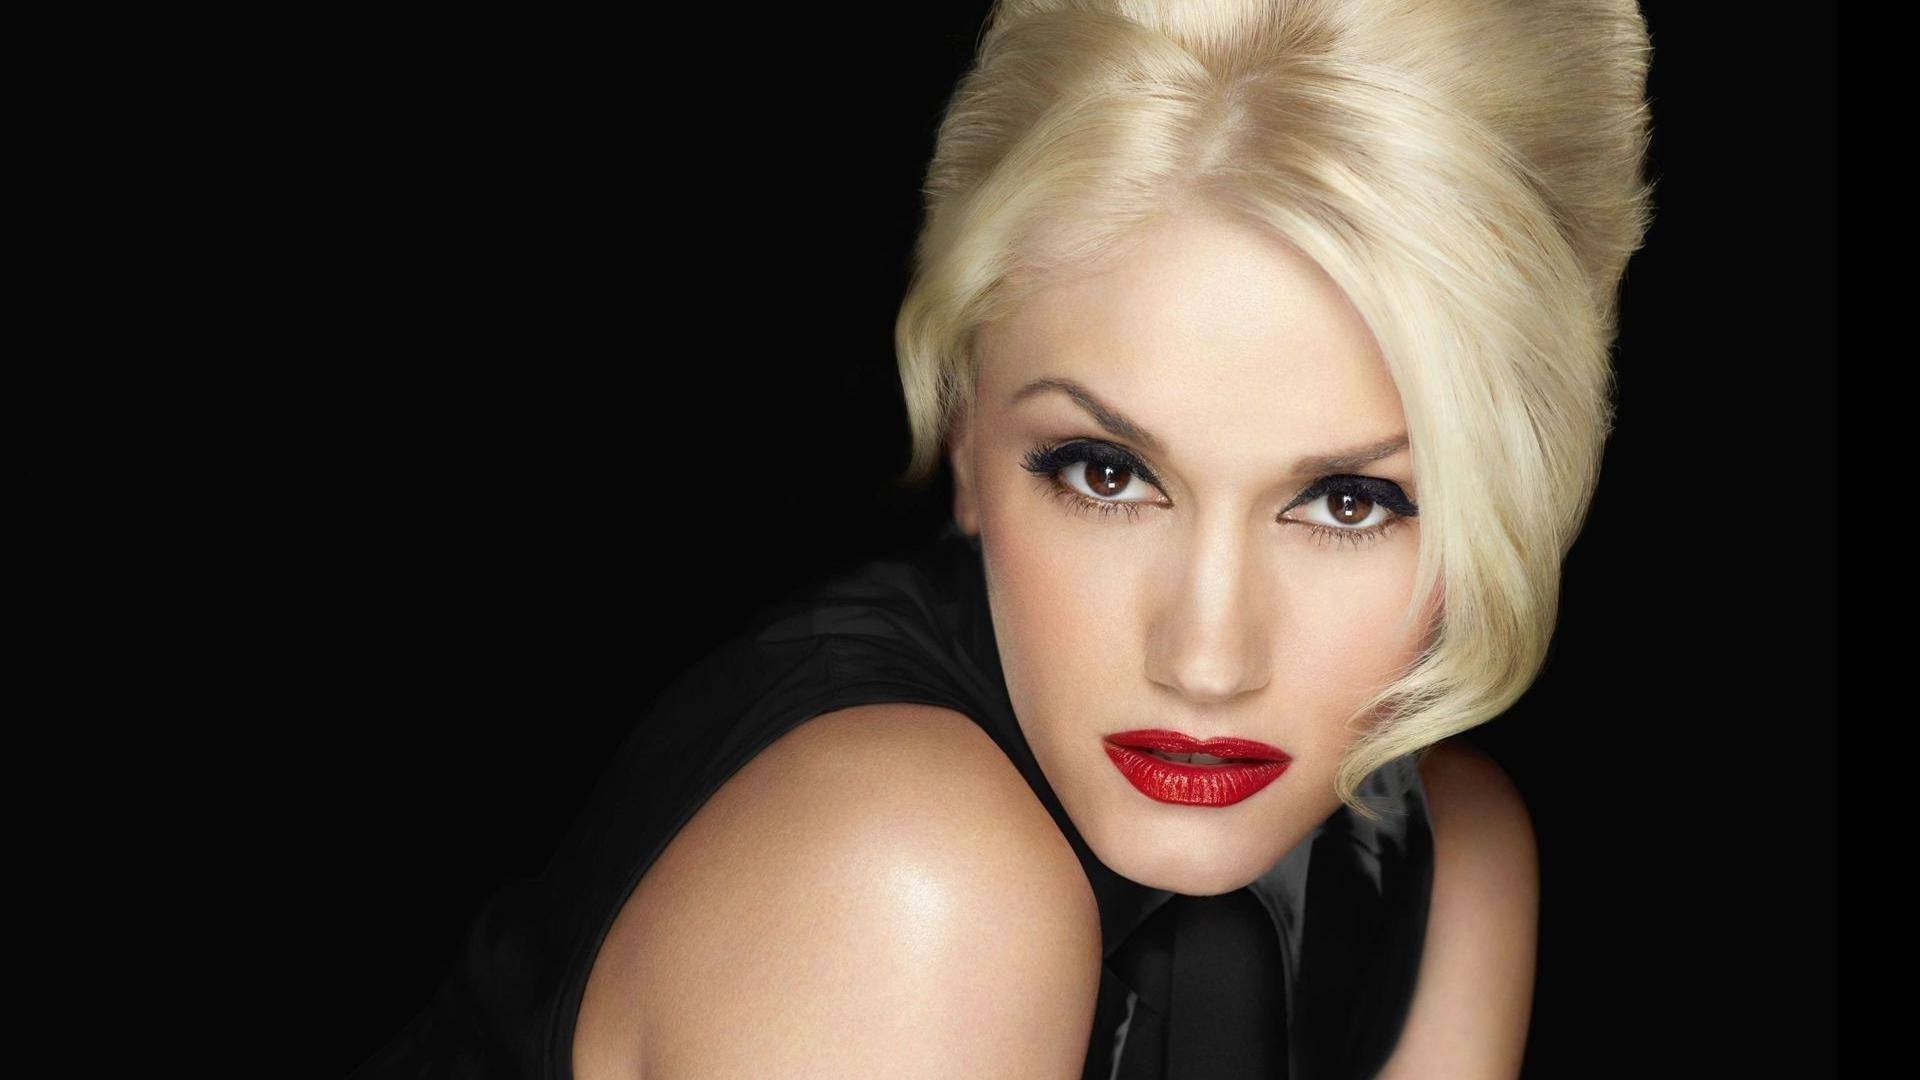 gwen-stefani-is-a-cougar